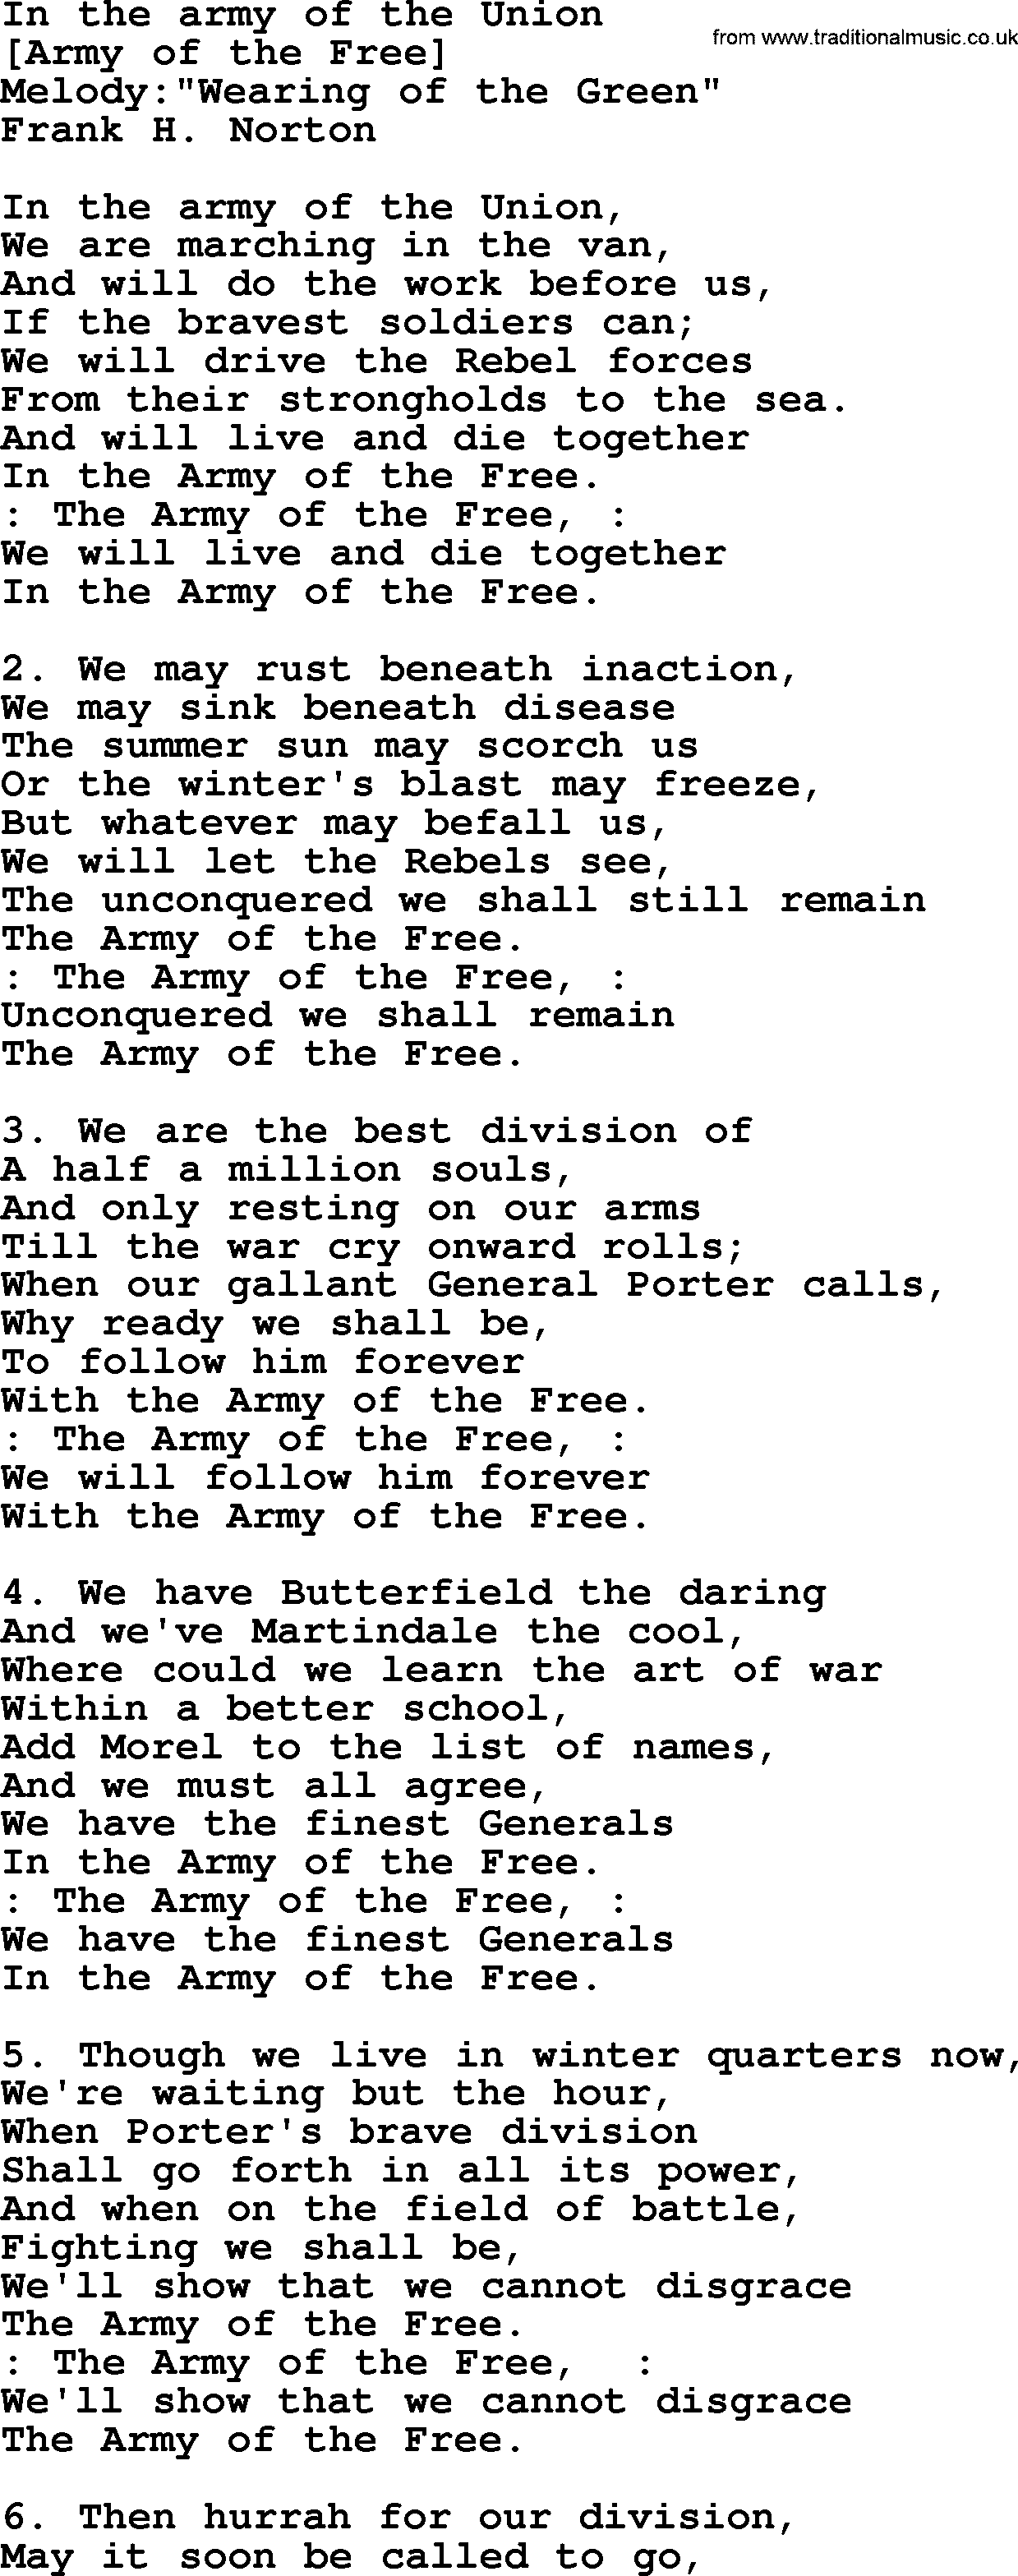 Old American Song - Lyrics for: In The Army Of The Union